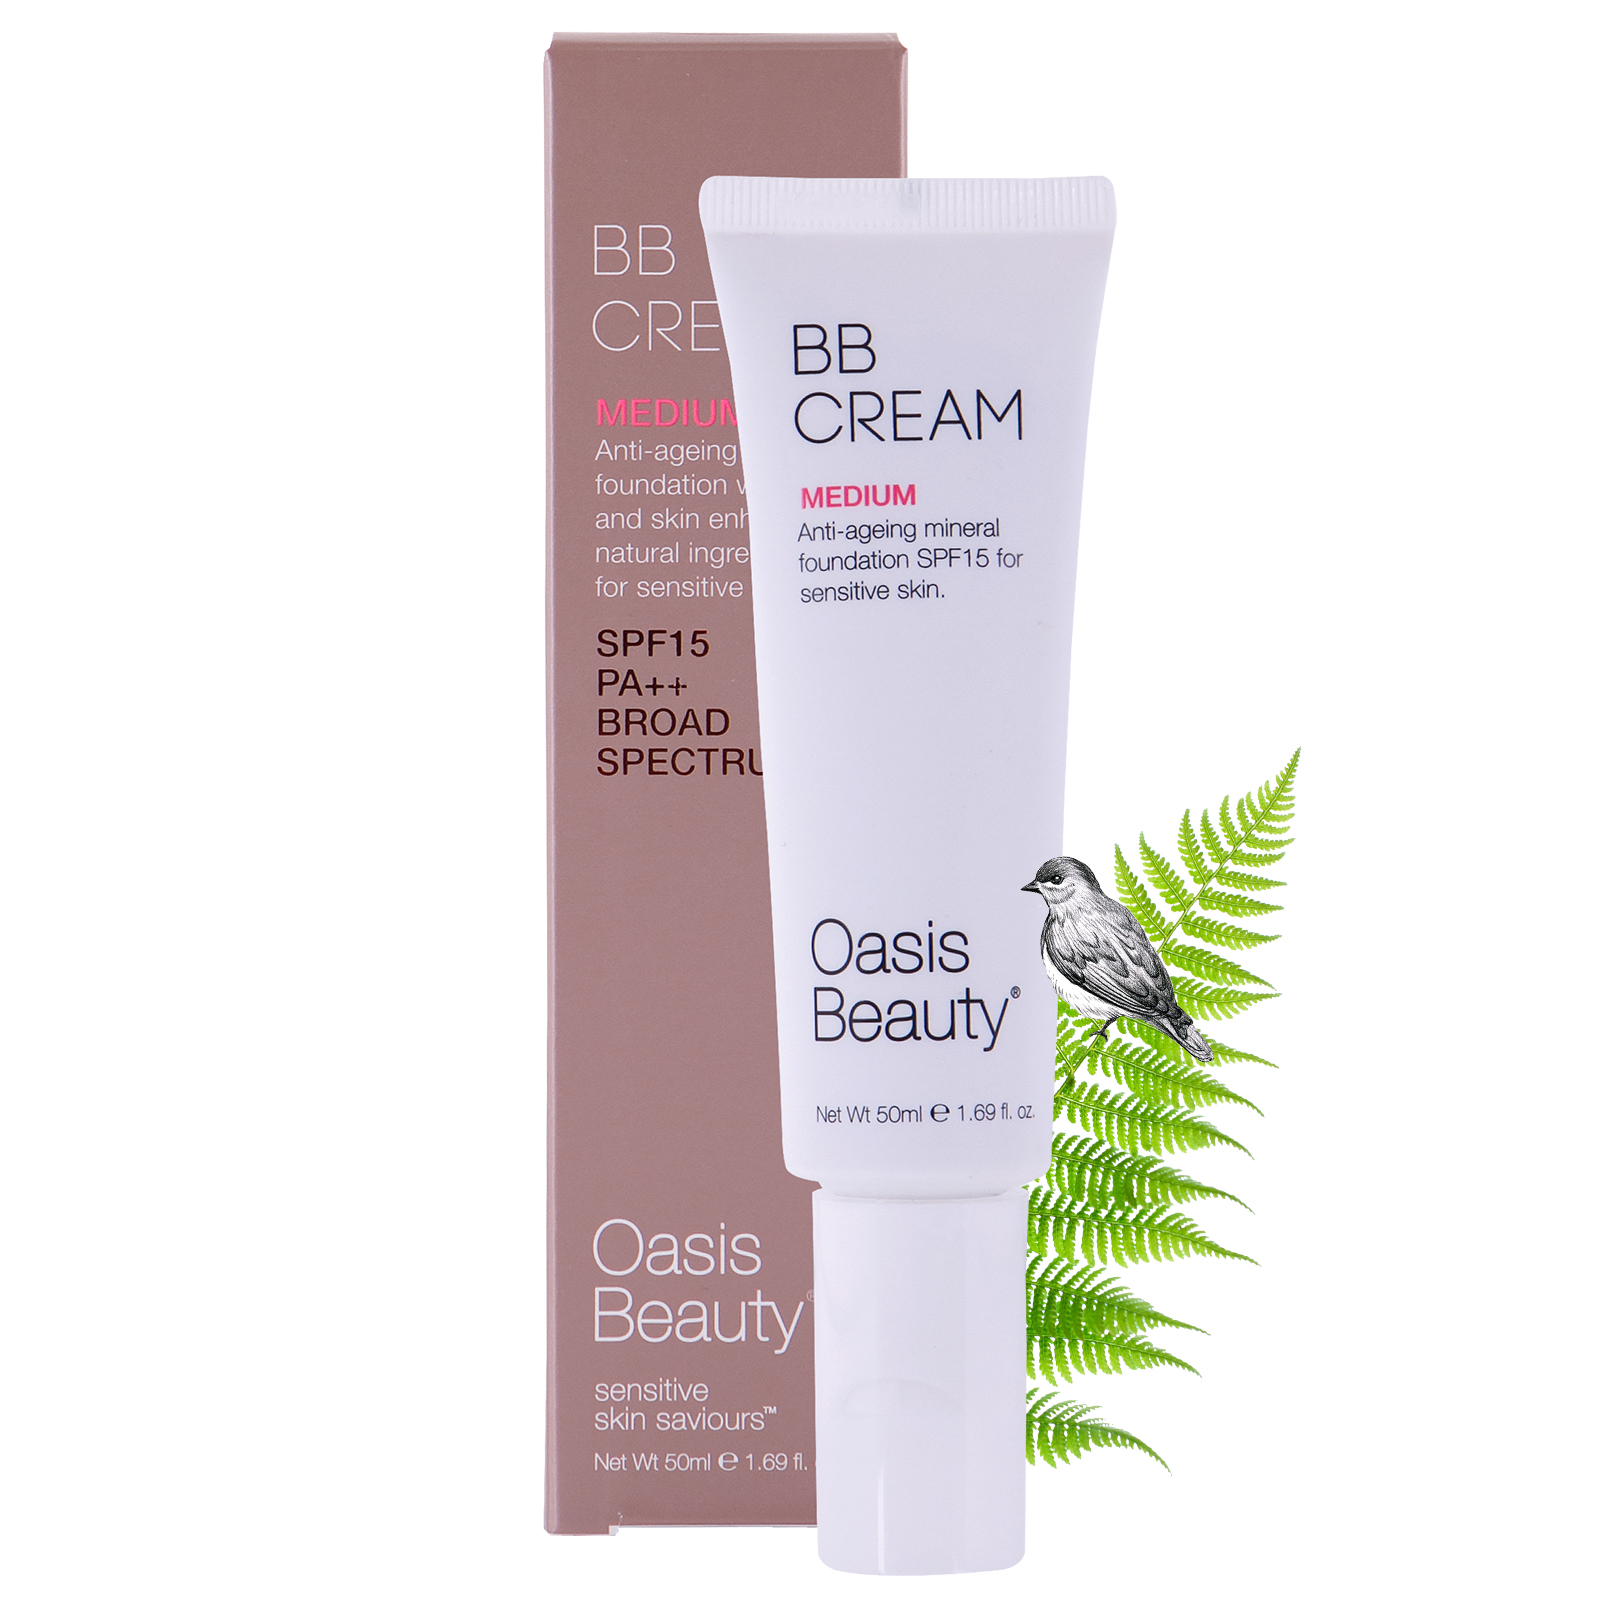 Hardy's Health Stores - Oasis BB Cream